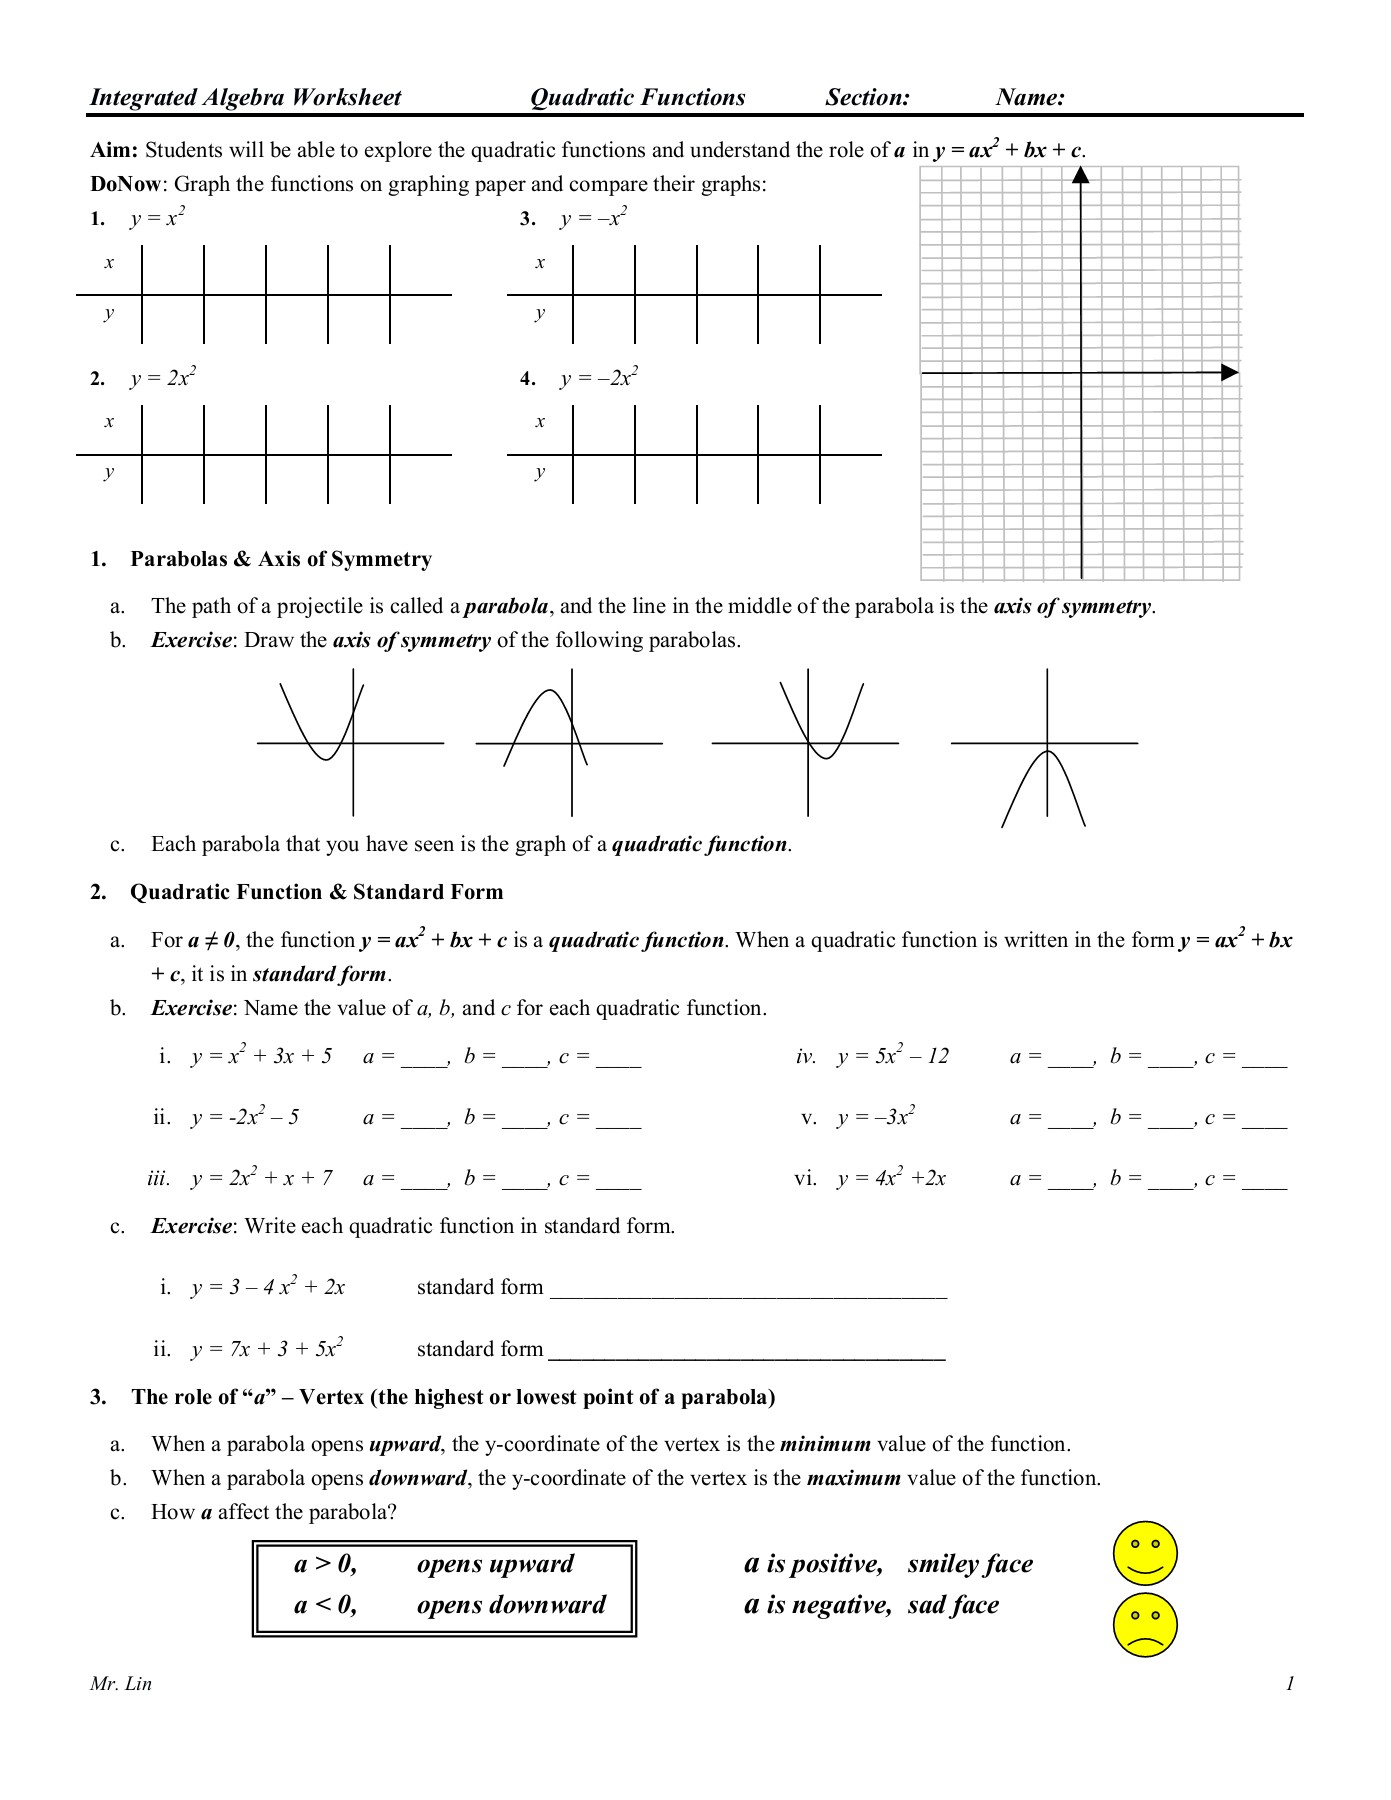 Algebra Worksheet 09 Qudratic Functions Pages 1 - 5 - Text